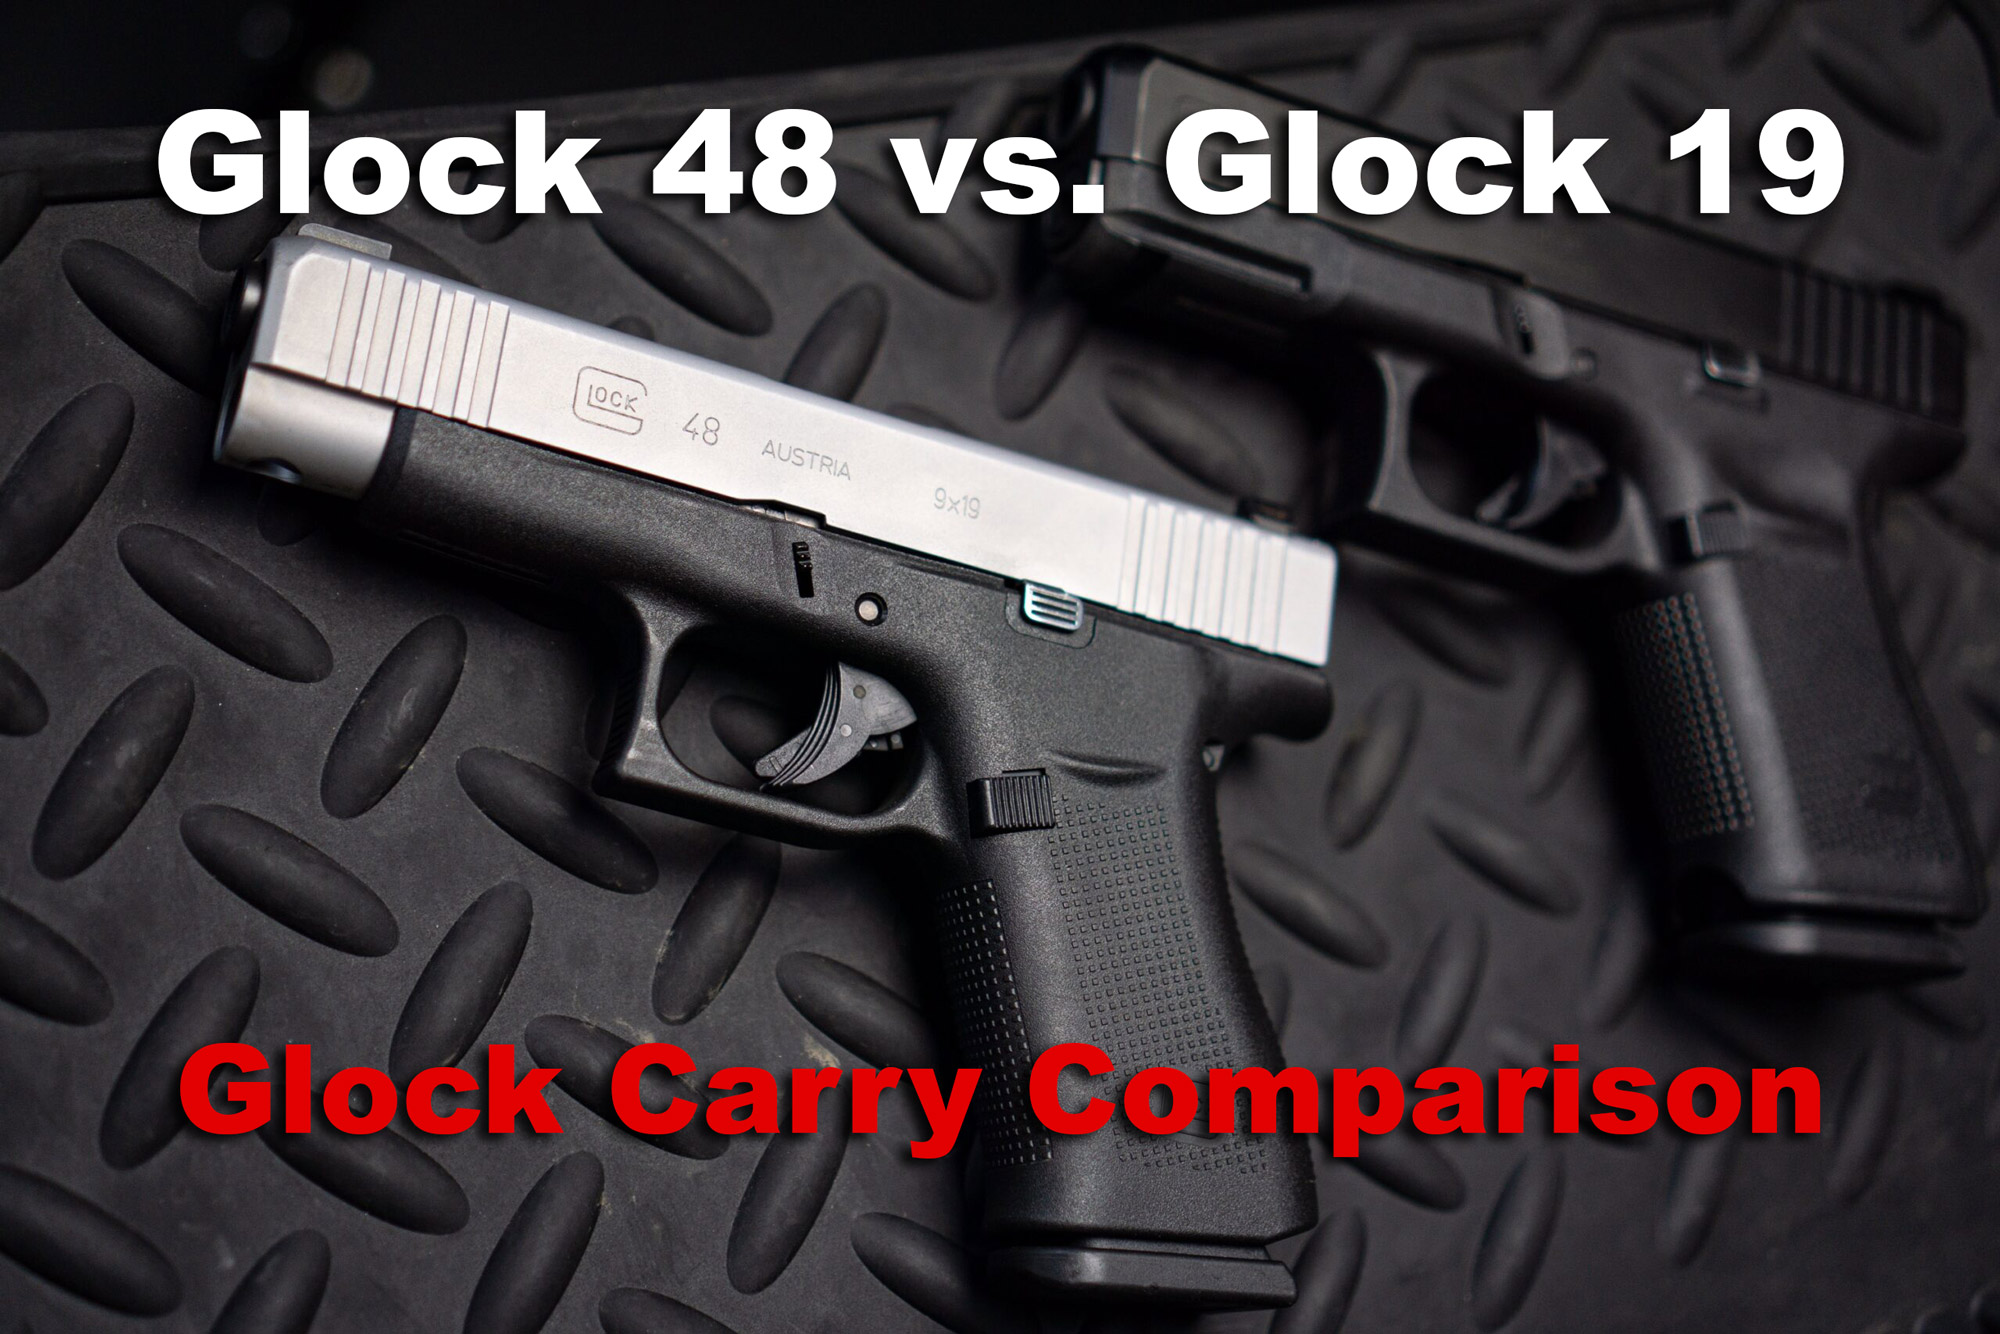 Glock 48 vs Glock 19 pistols side by side